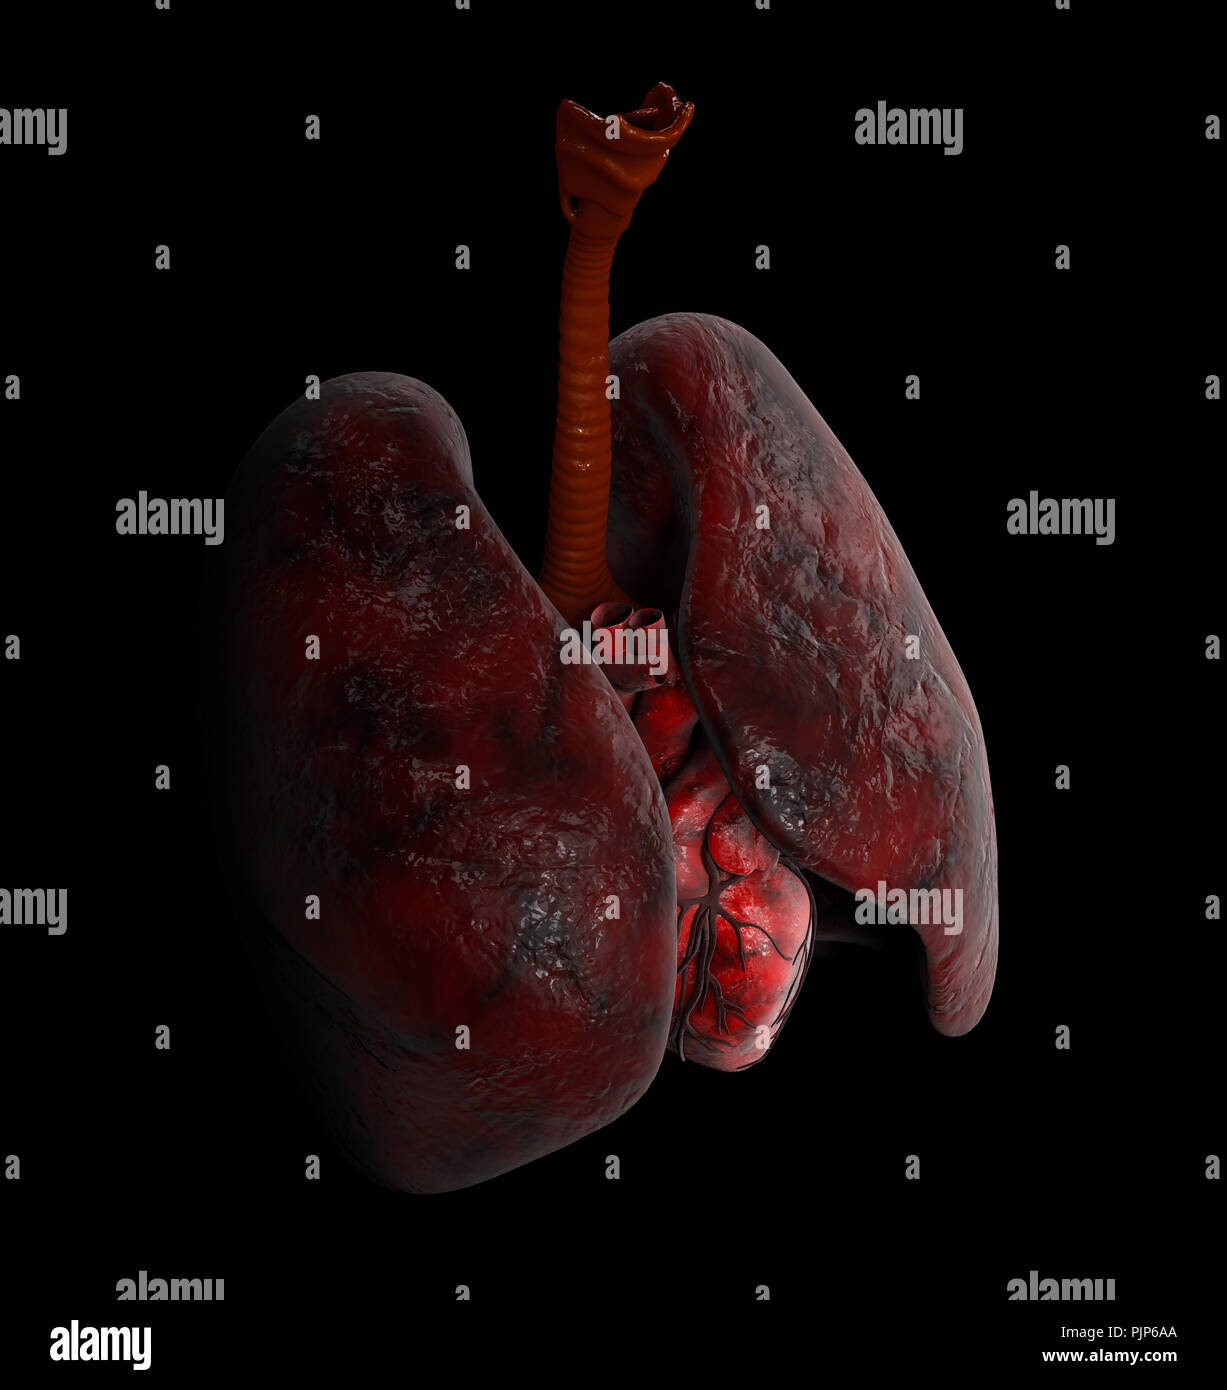 Human Lung and heart anatomy, 3d Illustration on black background - Stock Image